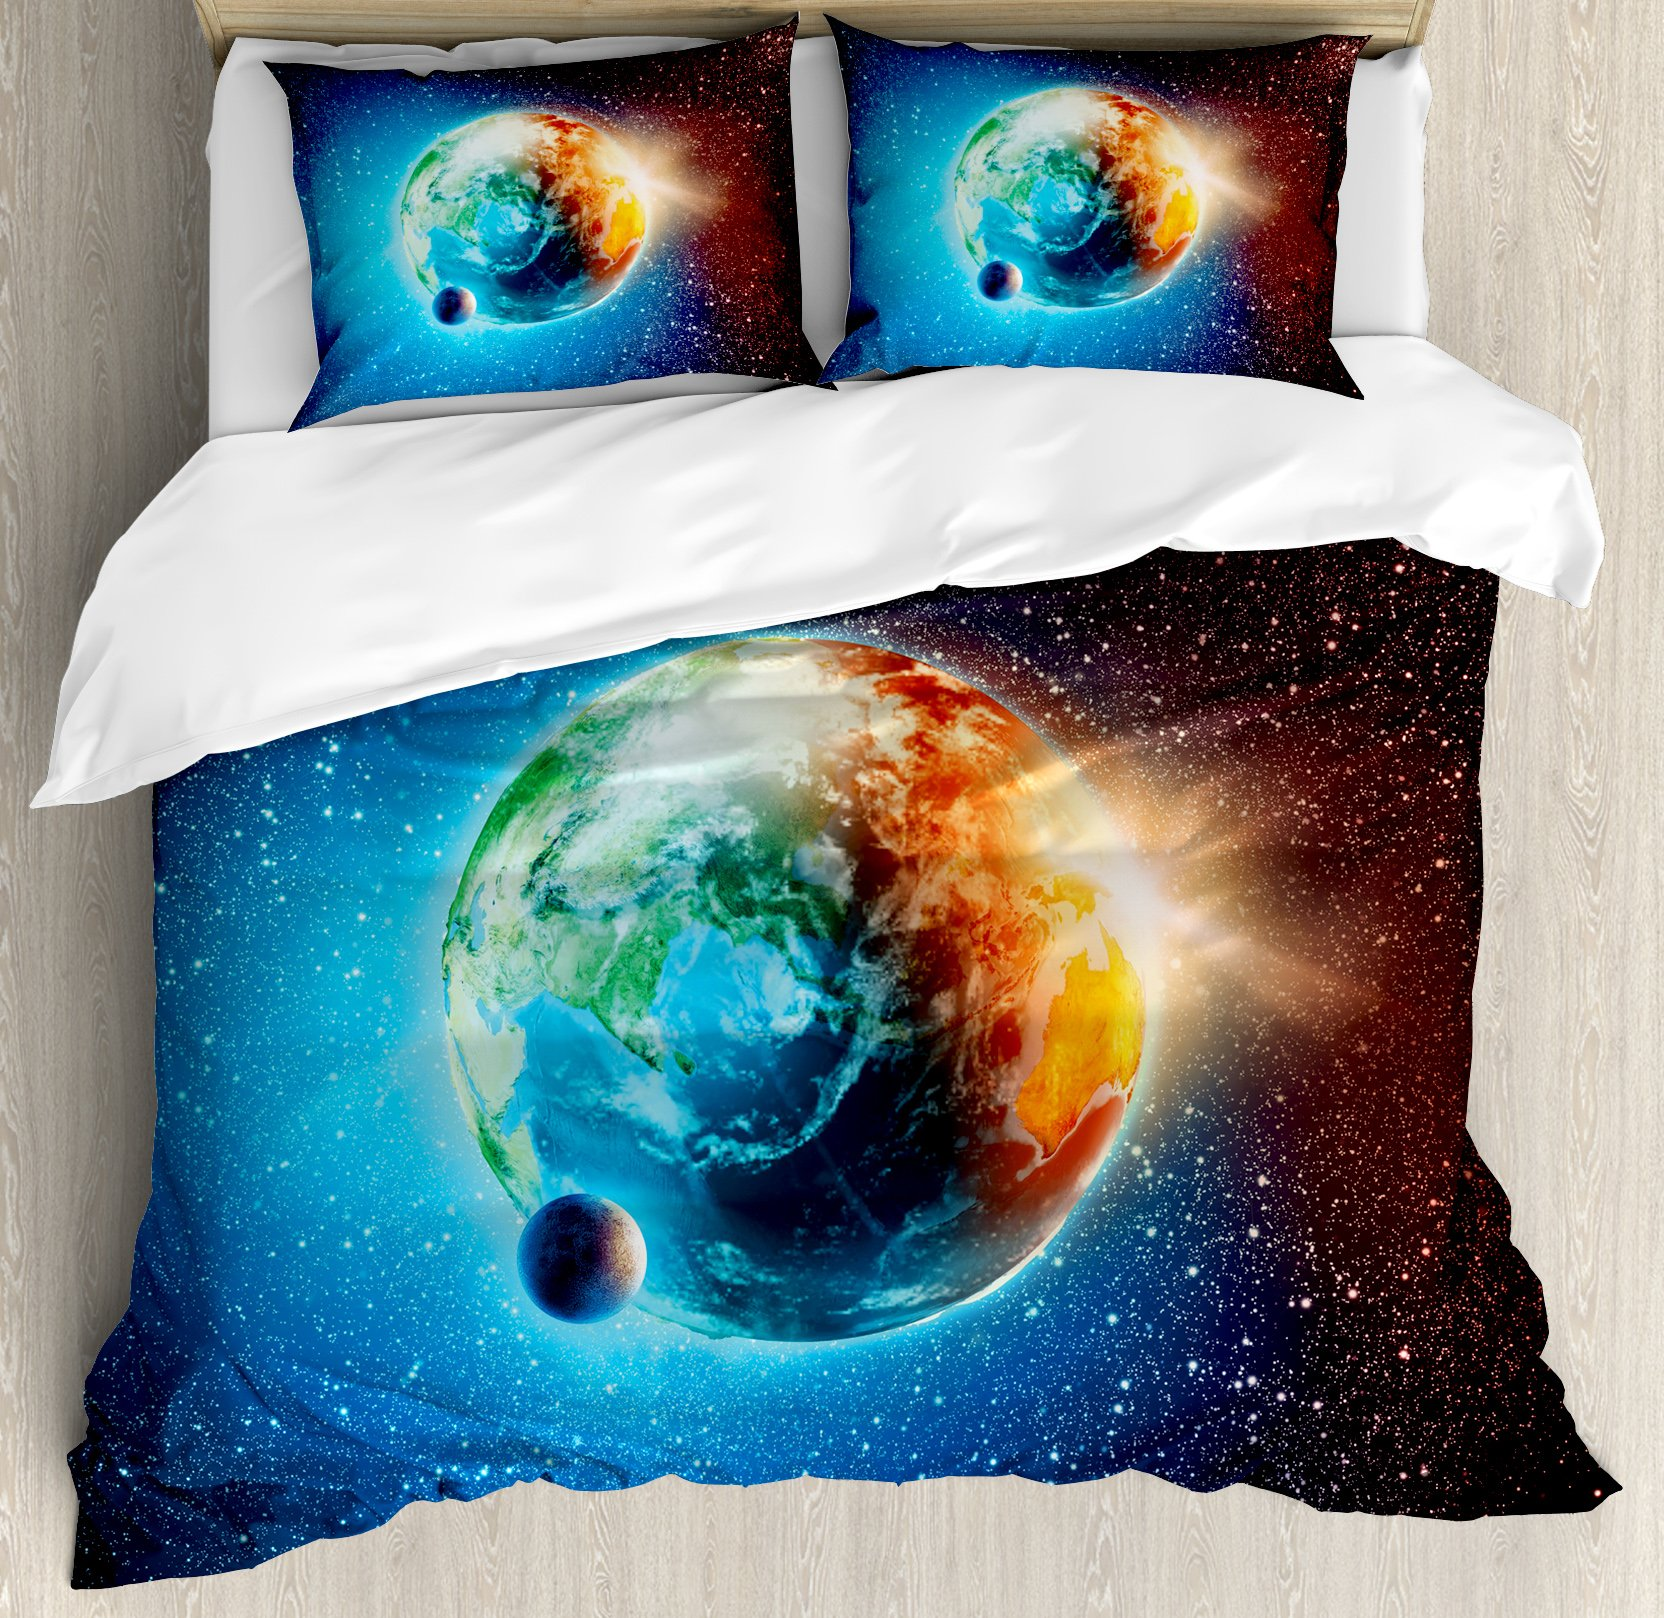 Earth Duvet Cover Set Queen Size by Ambesonne, Majestic Galaxy Outer Space View Universe with Planet Earth Stars Astral Theme, Decorative 3 Piece Bedding Set with 2 Pillow Shams, Orange Blue Black